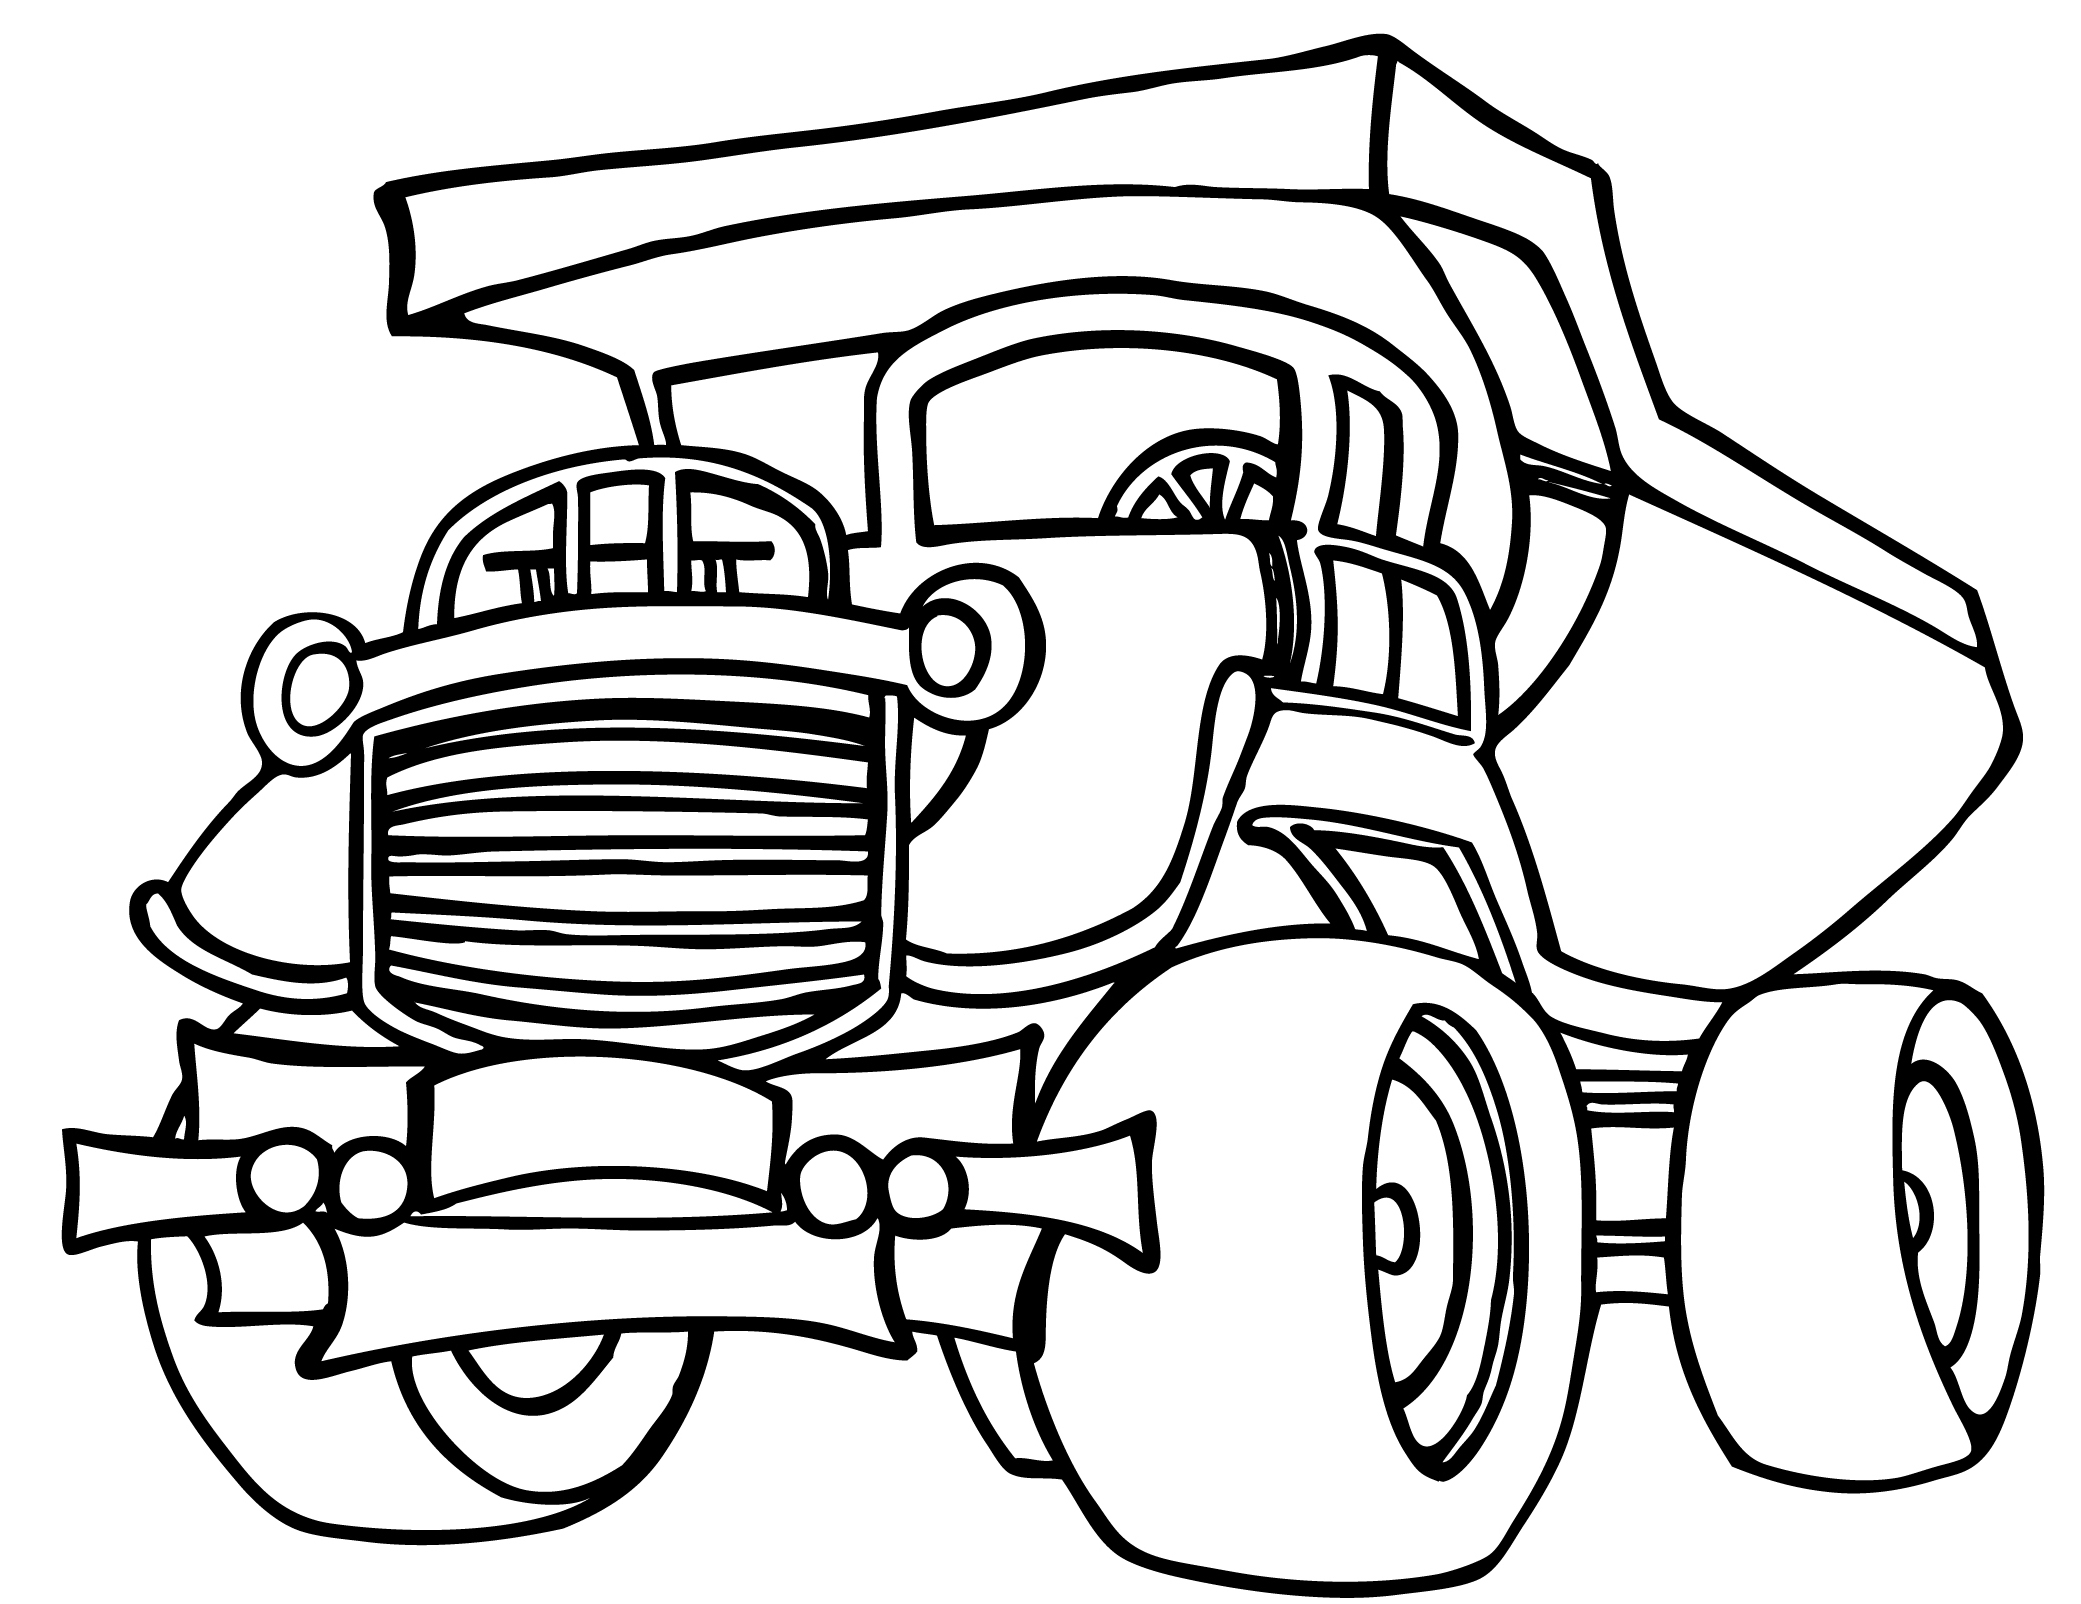 printable dump truck coloring page dump truck coloring pages to download and print for free truck coloring dump page printable